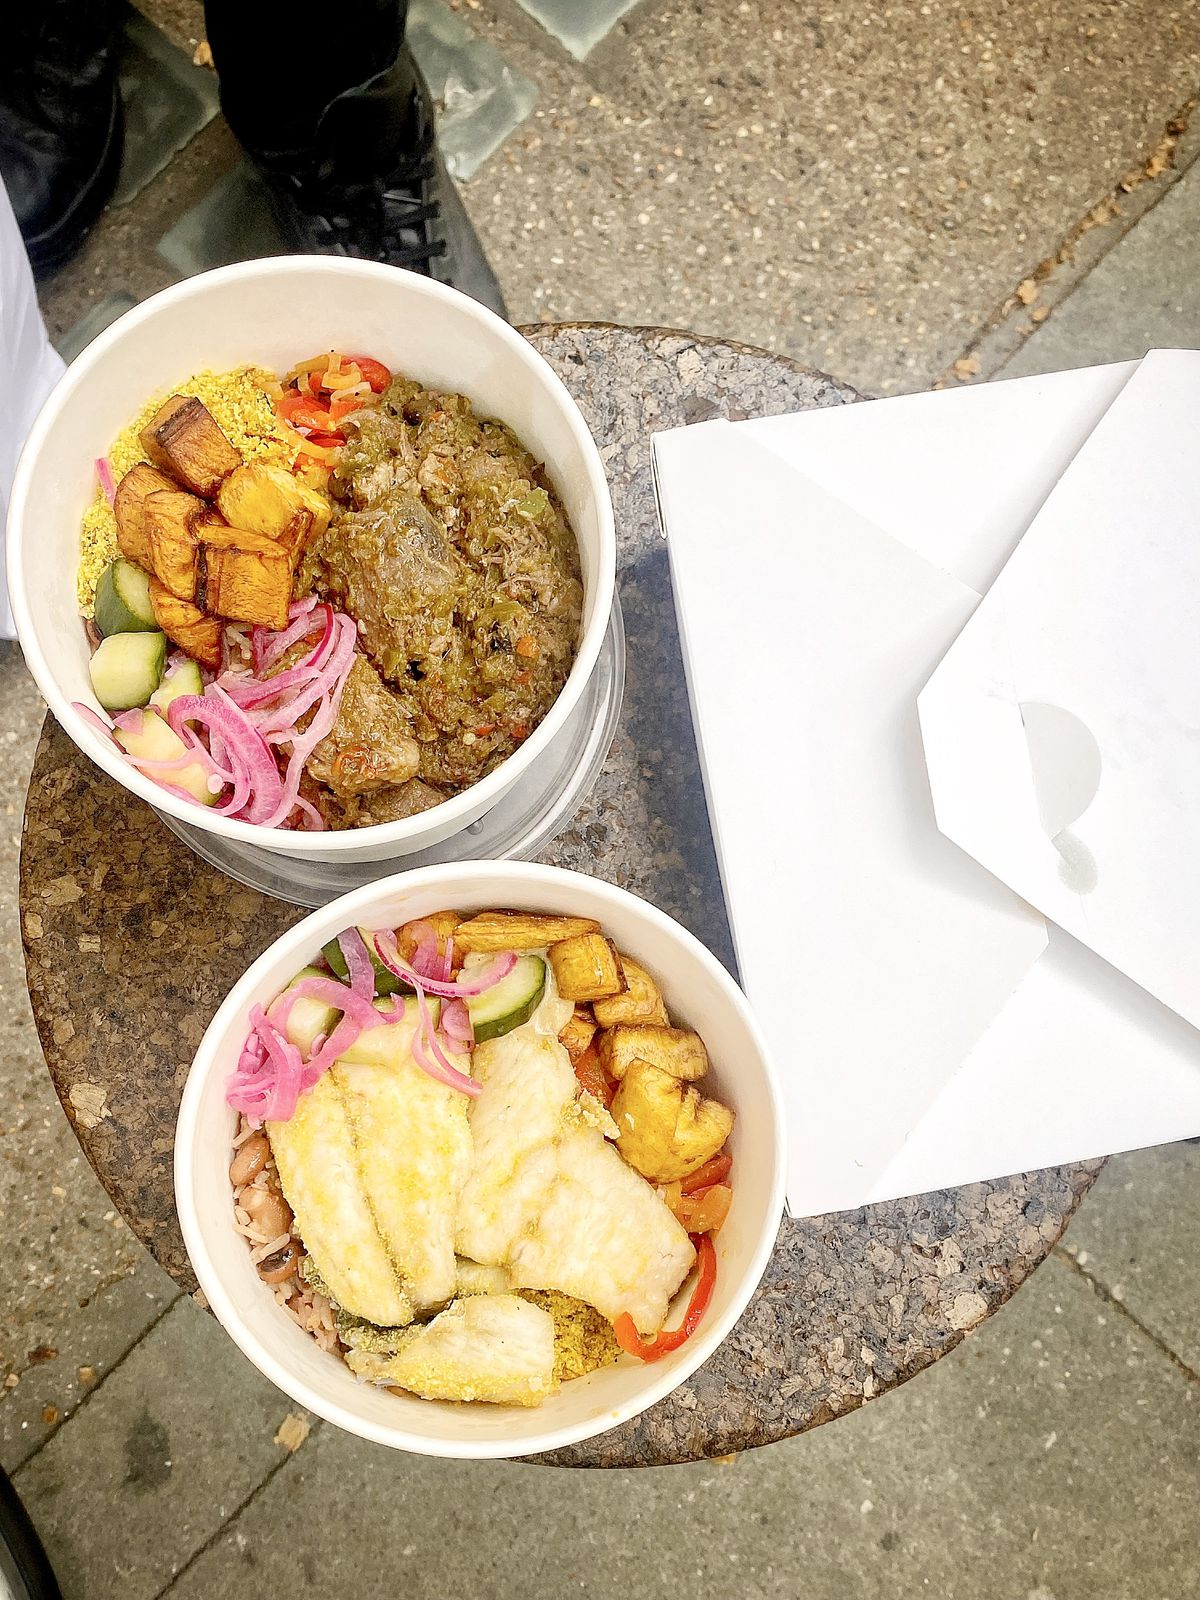 Goat amayase (top) and seabass (bottom) with pickled onions, over atassi and fufu, in white tubs on a stool, seen outside on a London pavement